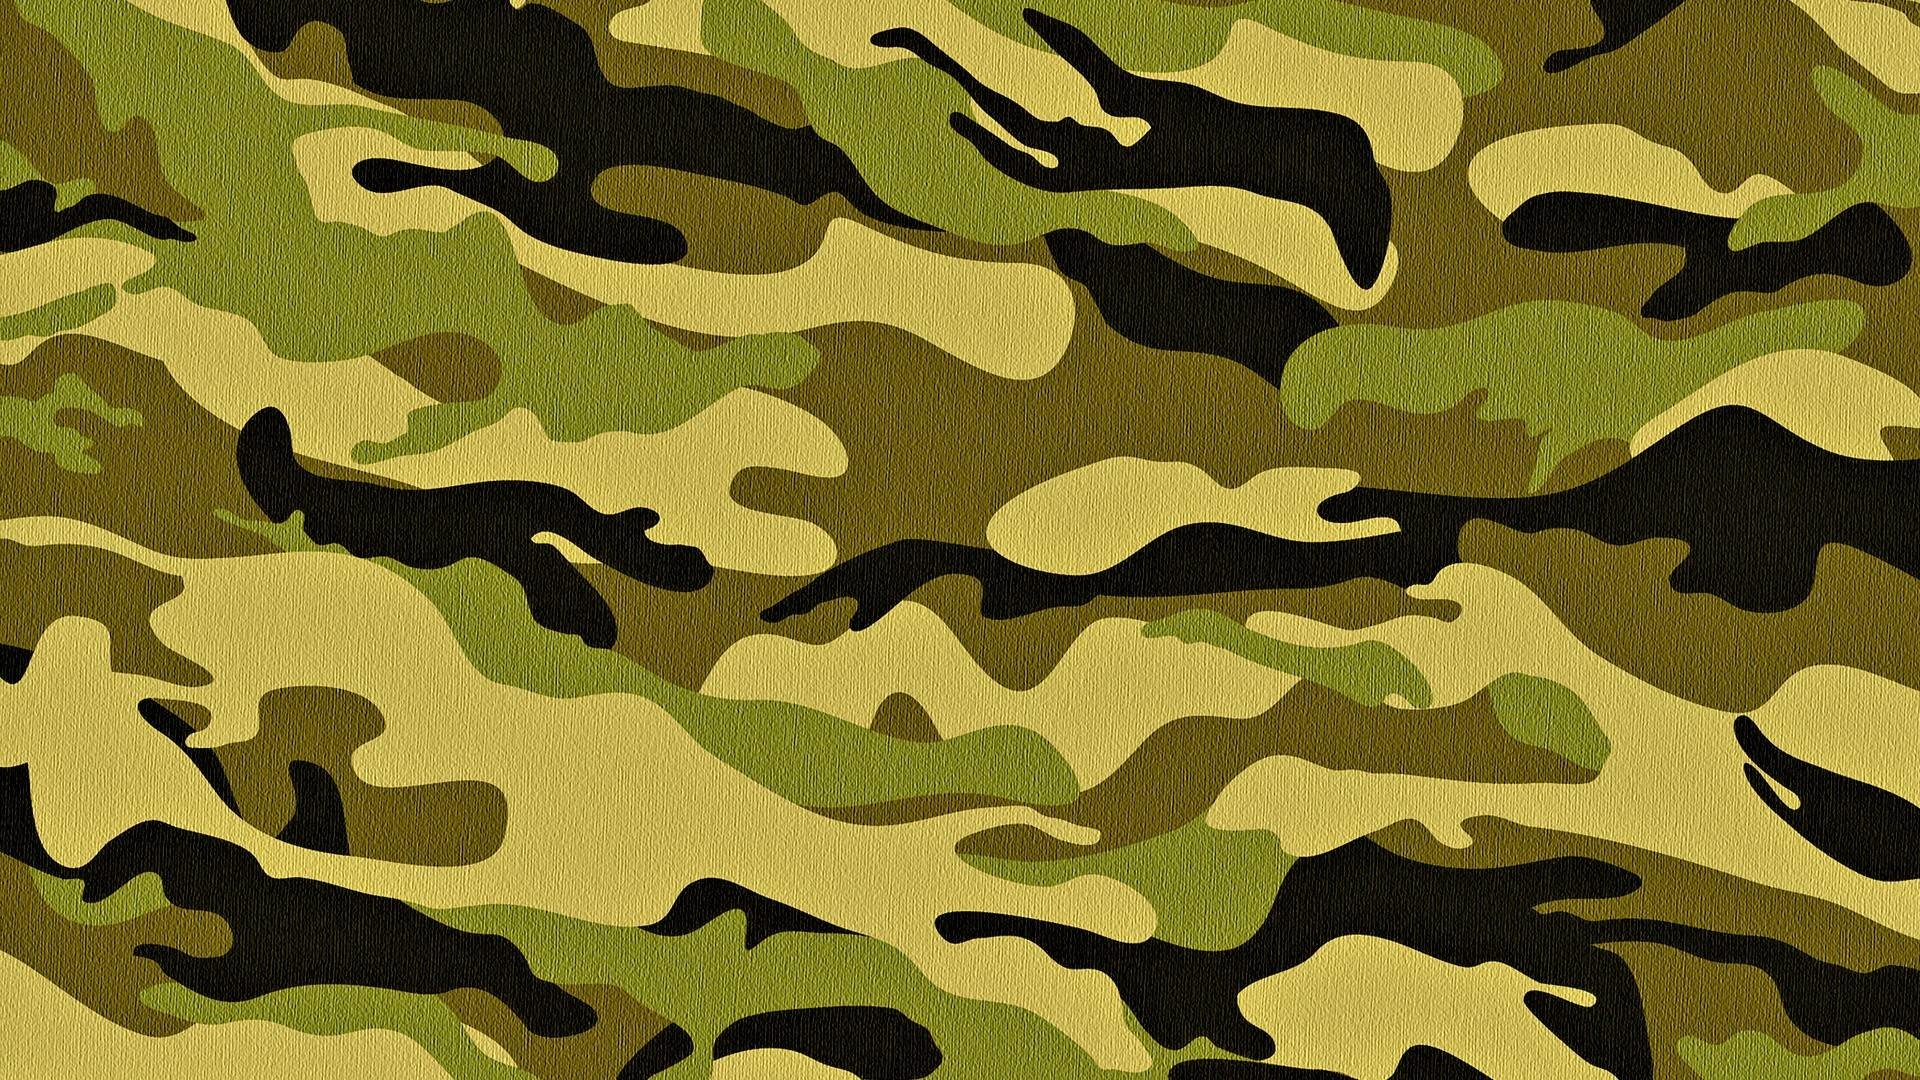 Army Camo Wallpaper 57 images 1920x1080